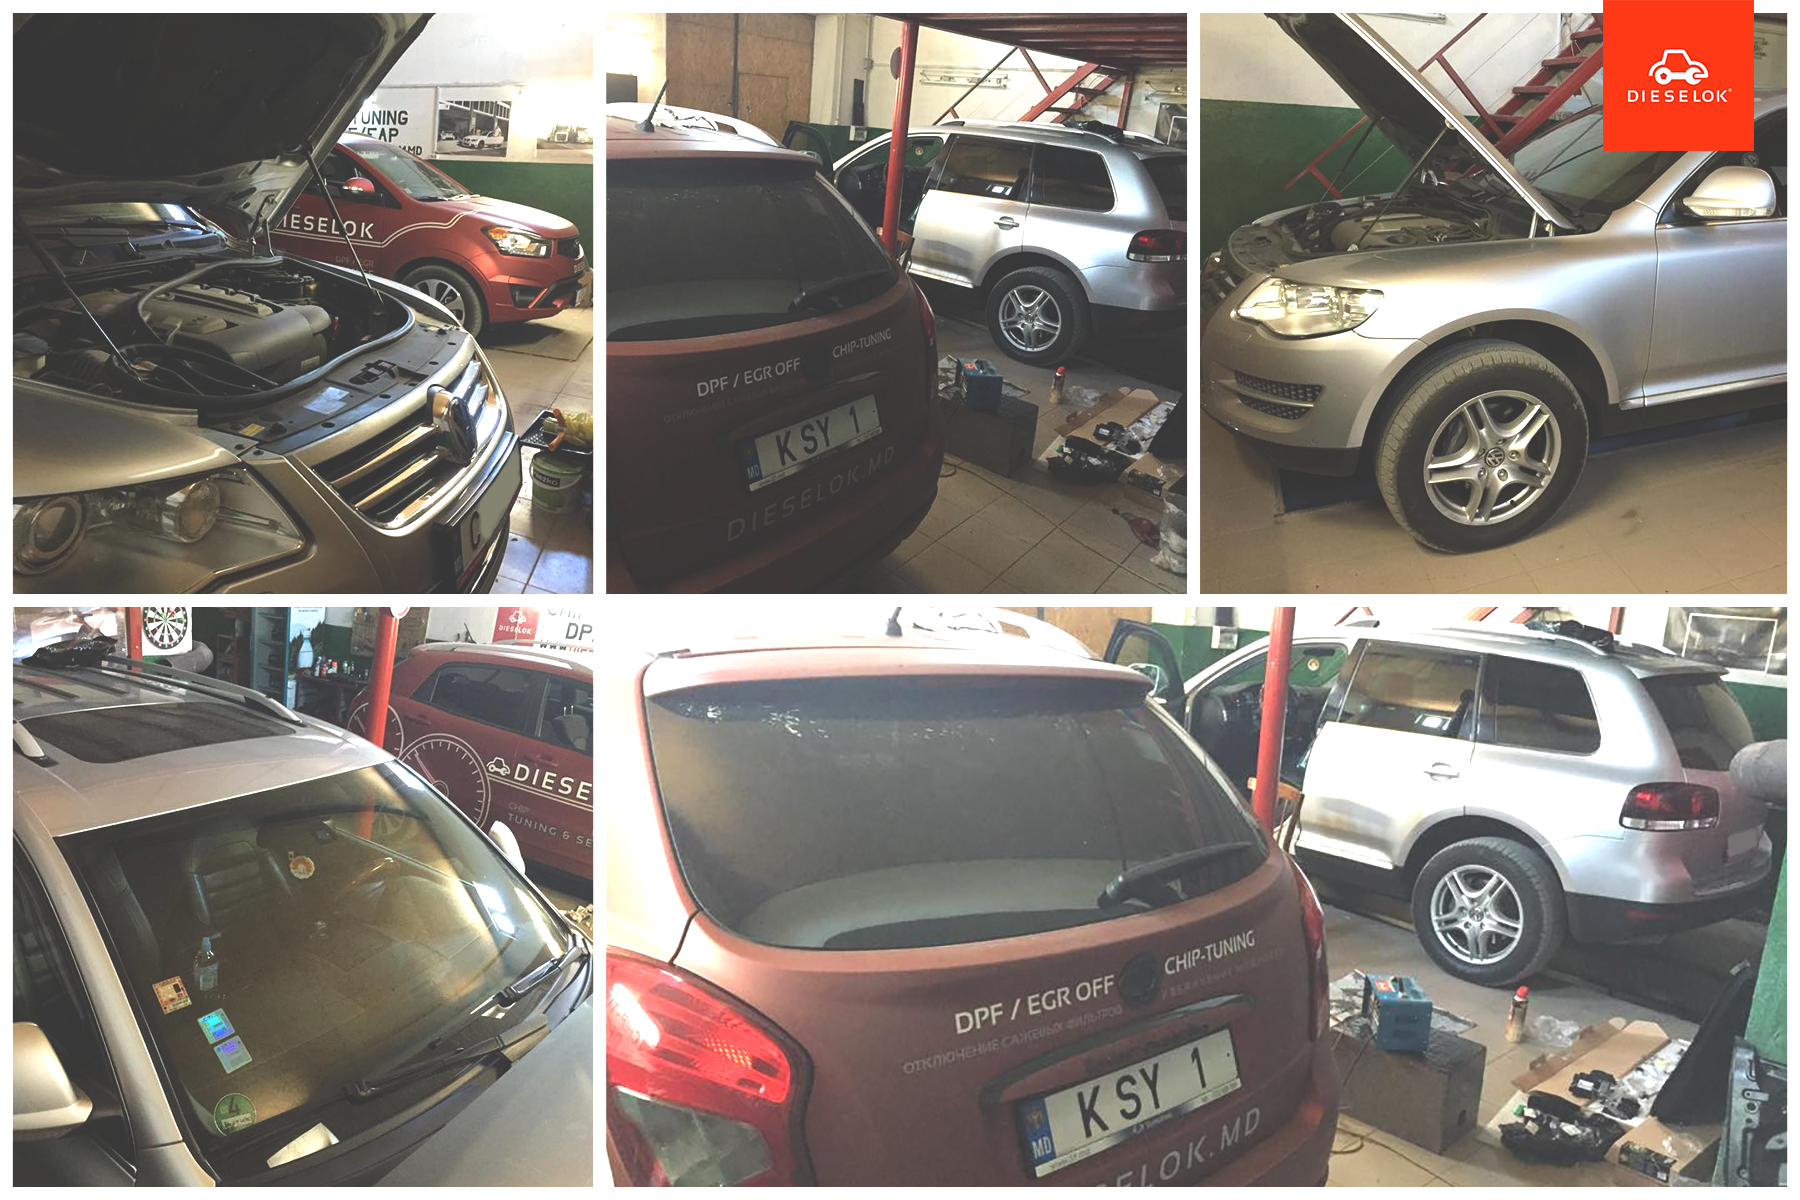 VW Touareg 2009 CHIP TUNING